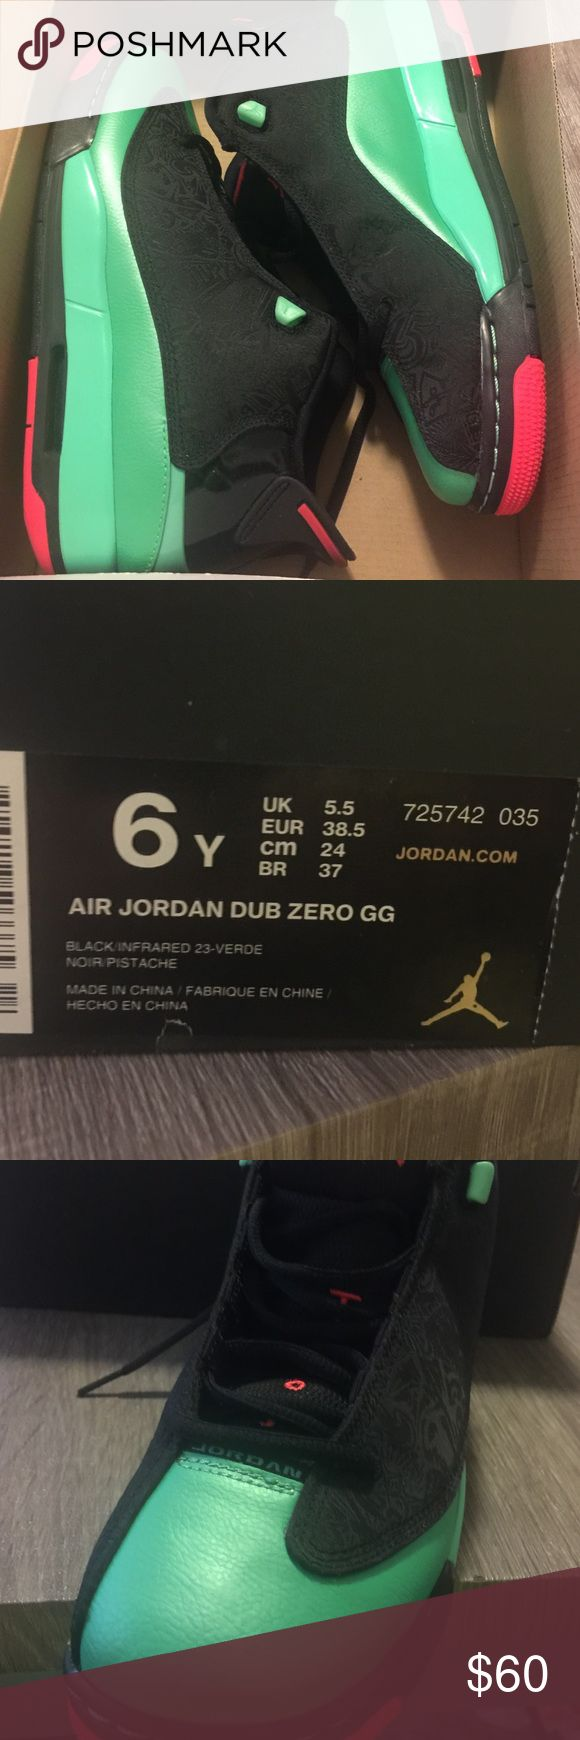 Air Jordan Dub Zero GG Worn-shown in the last pic. It's about a Size 8 in Women's. Jordan Shoes Sneakers